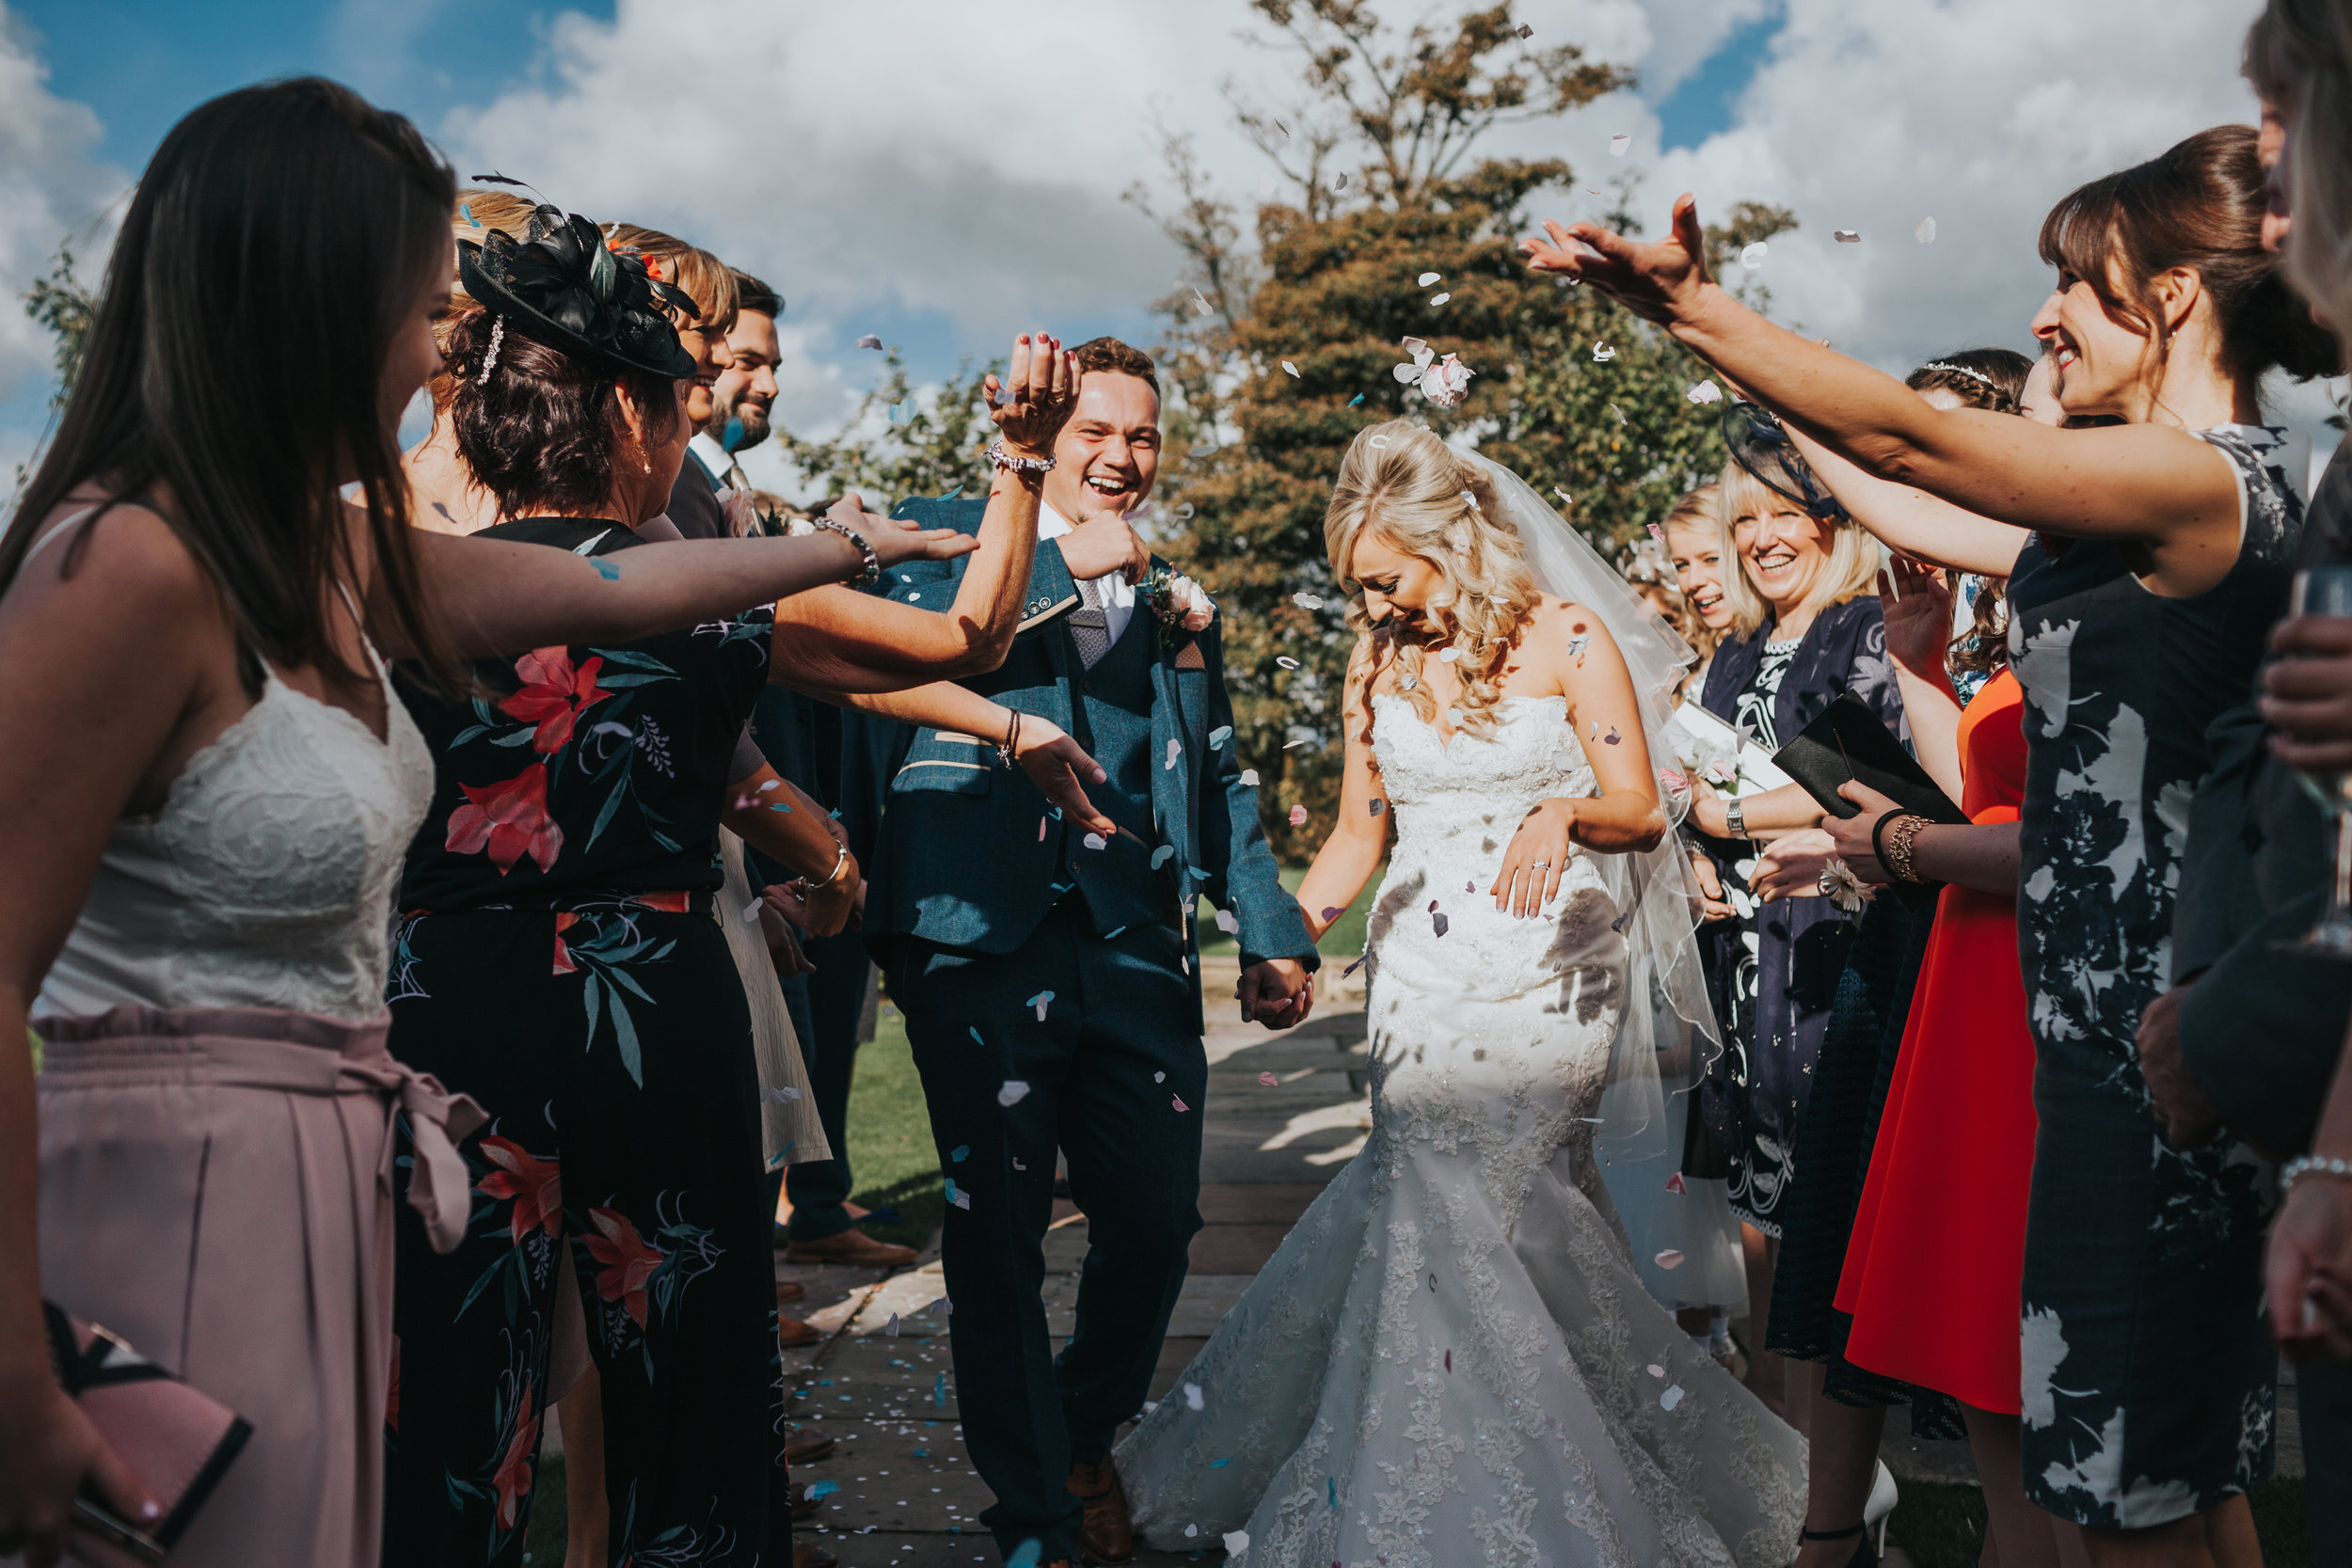 Bride and groom laugh as they are attacked with confetti.